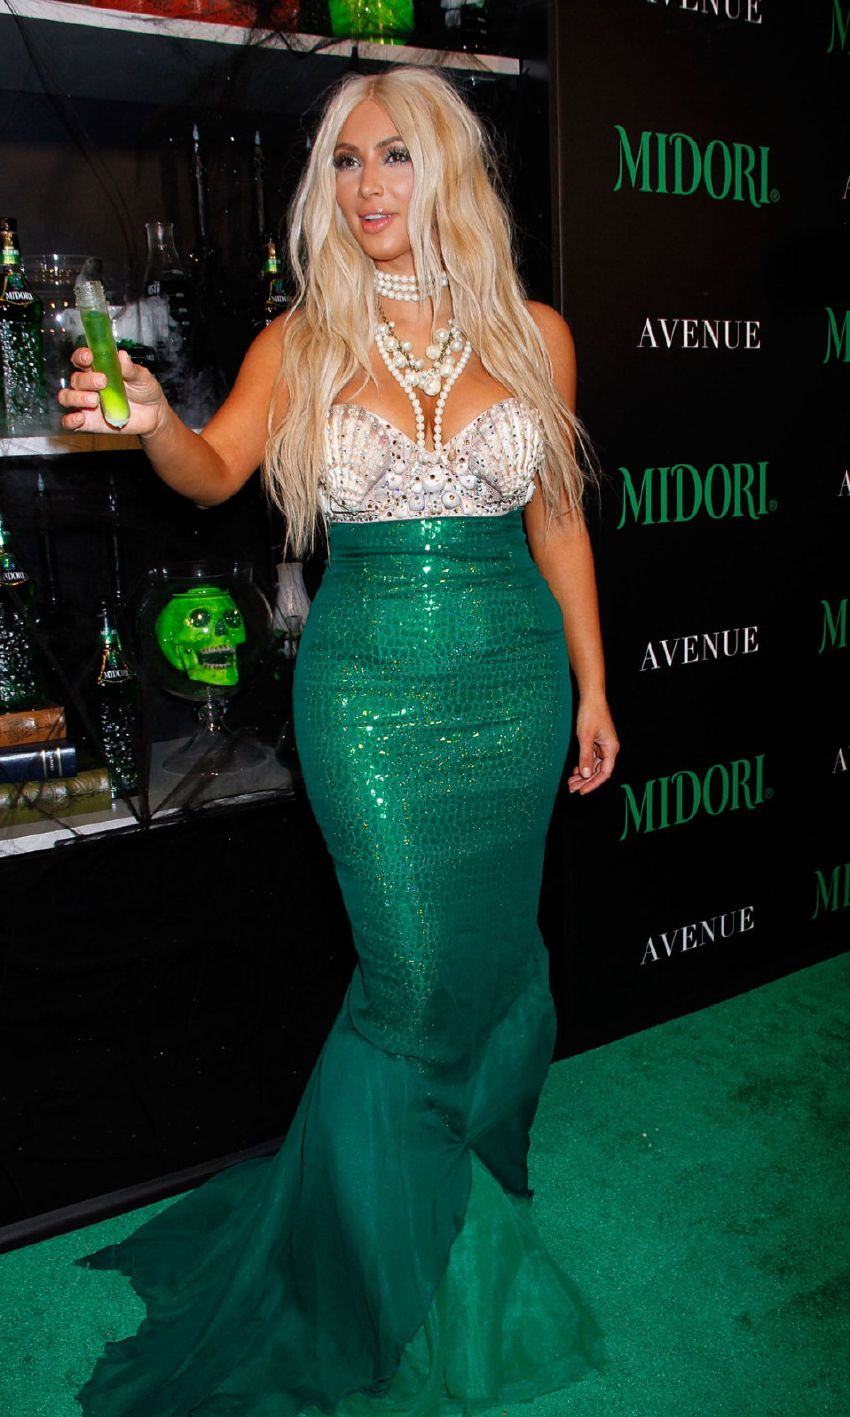 KIM & KANYE MAKE A SPLASH MIDORI GREEN HALLOWEEN | Jones Magazine